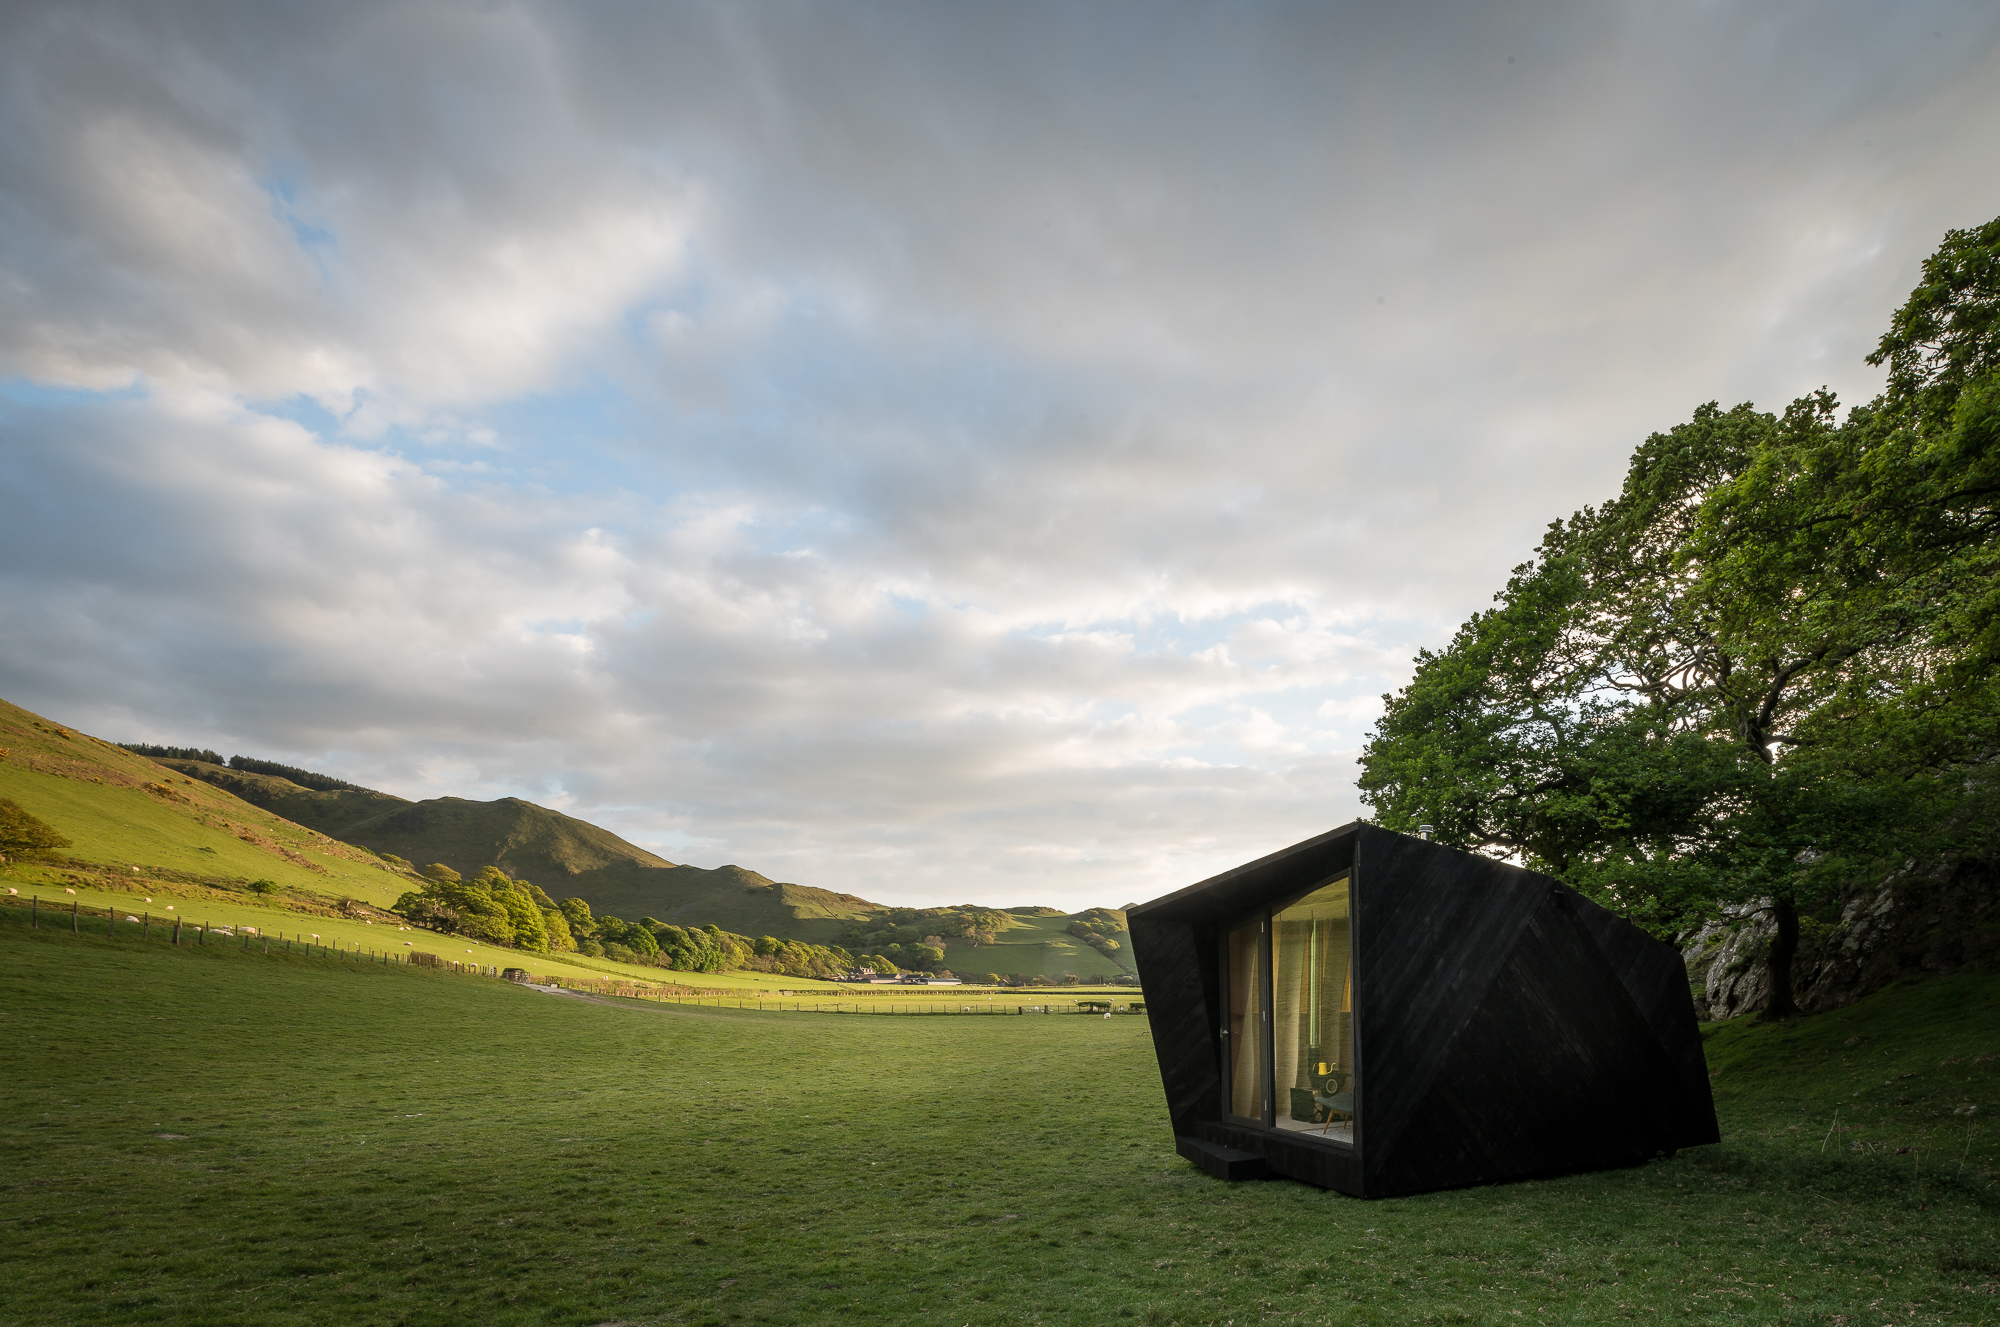 Pop-up Hotel, Castell Y Bere, Wales